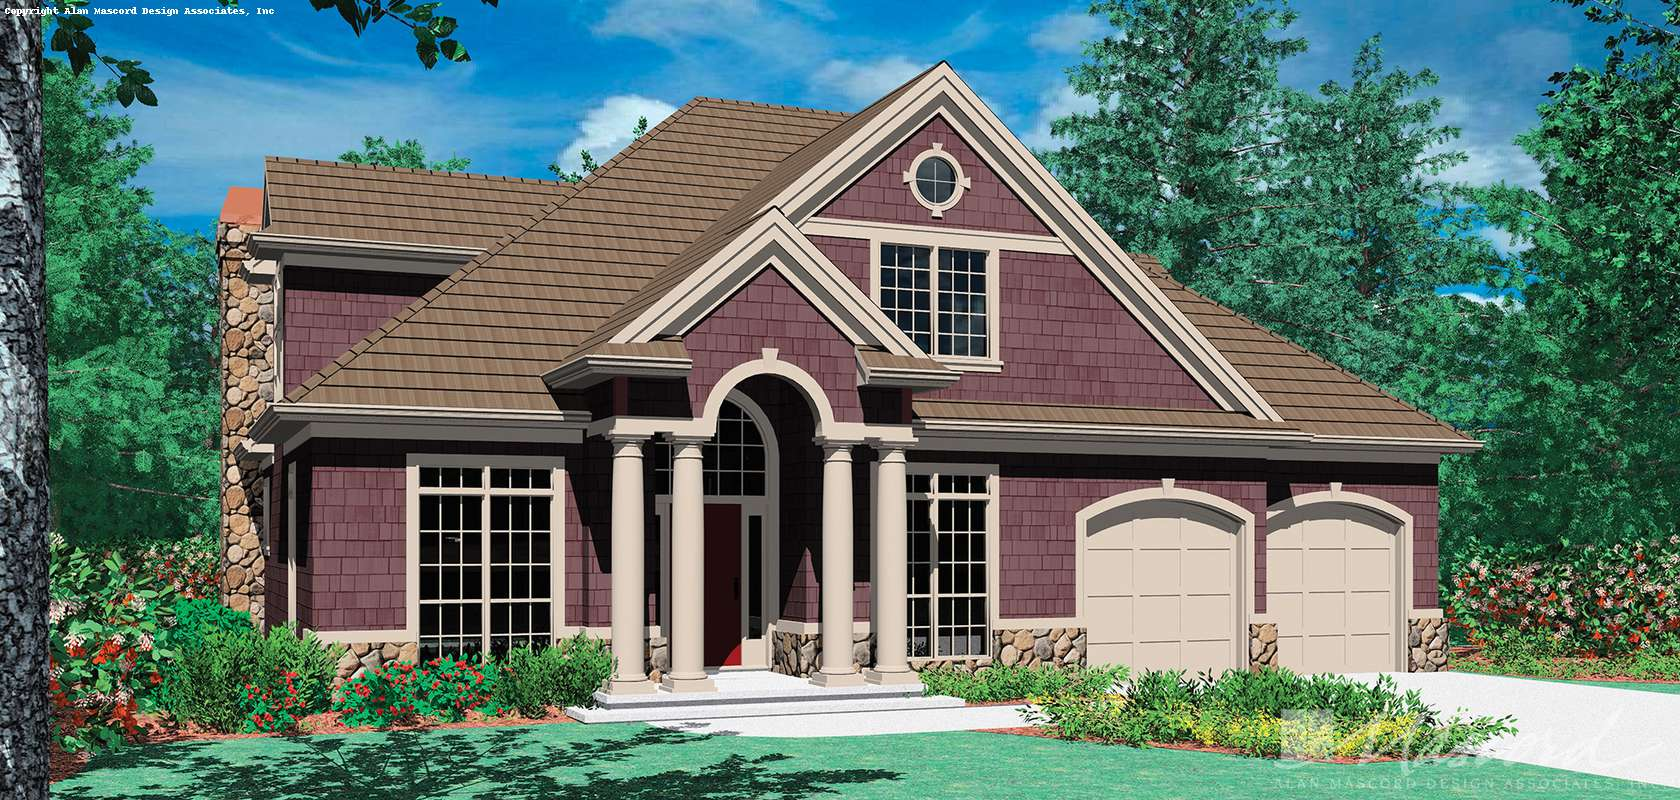 Mascord House Plan B22122A: The Saybrooke